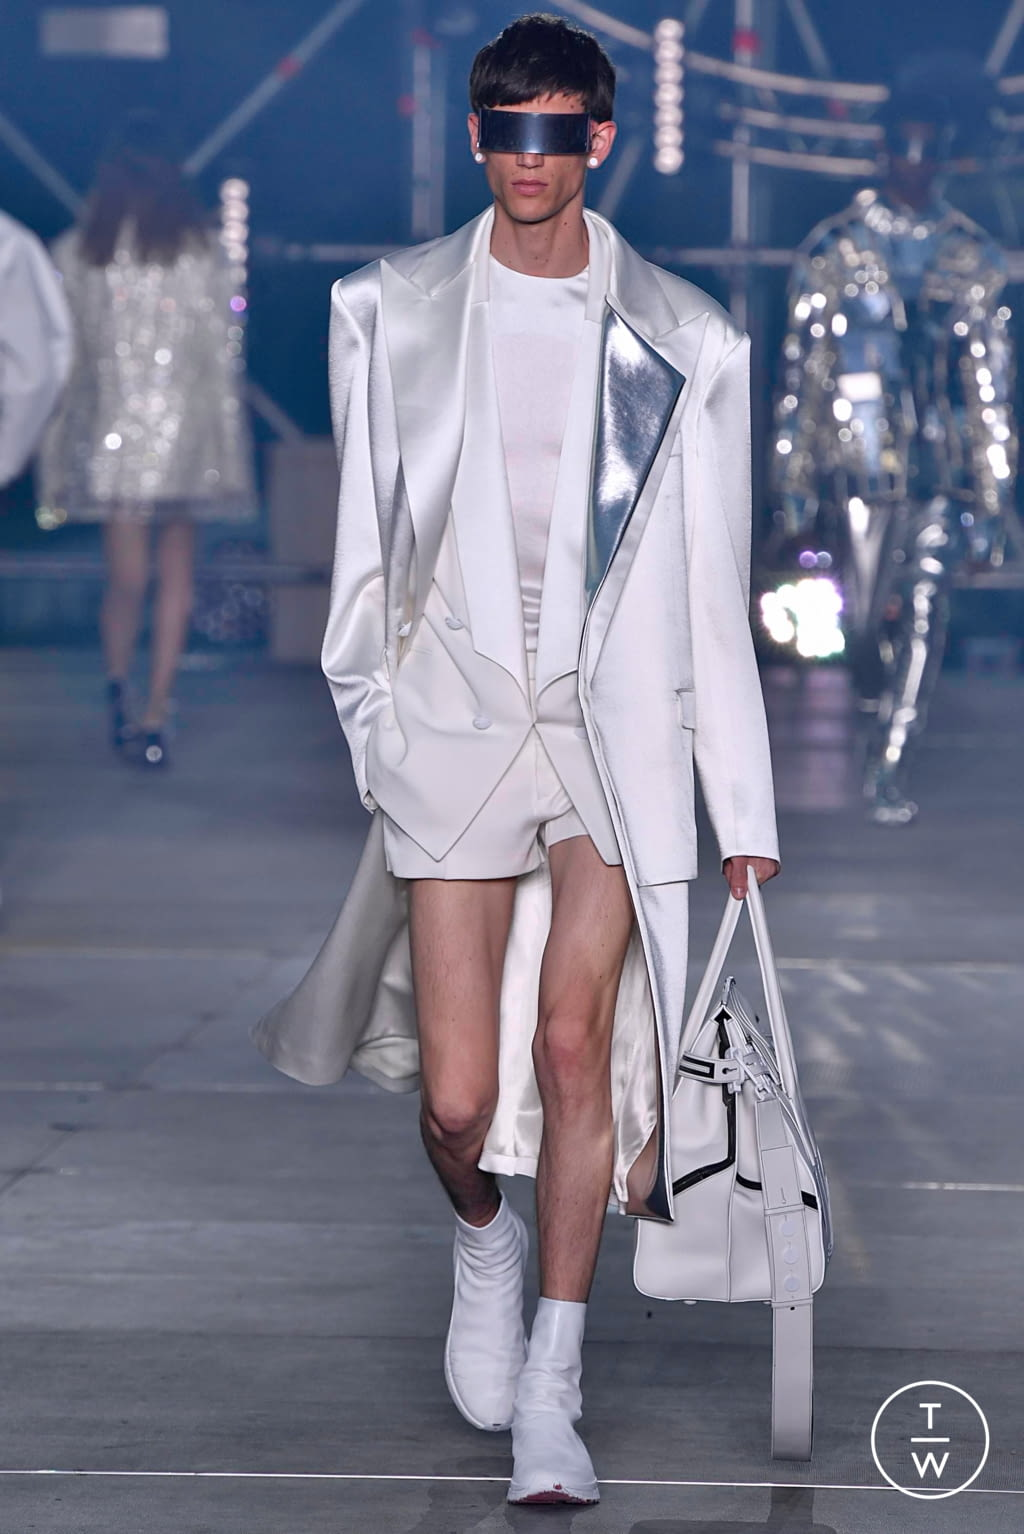 Fiori Bianchi E Gialli Undici Lettere.Balmain Ss20 Menswear 11 The Fashion Search Engine Tagwalk